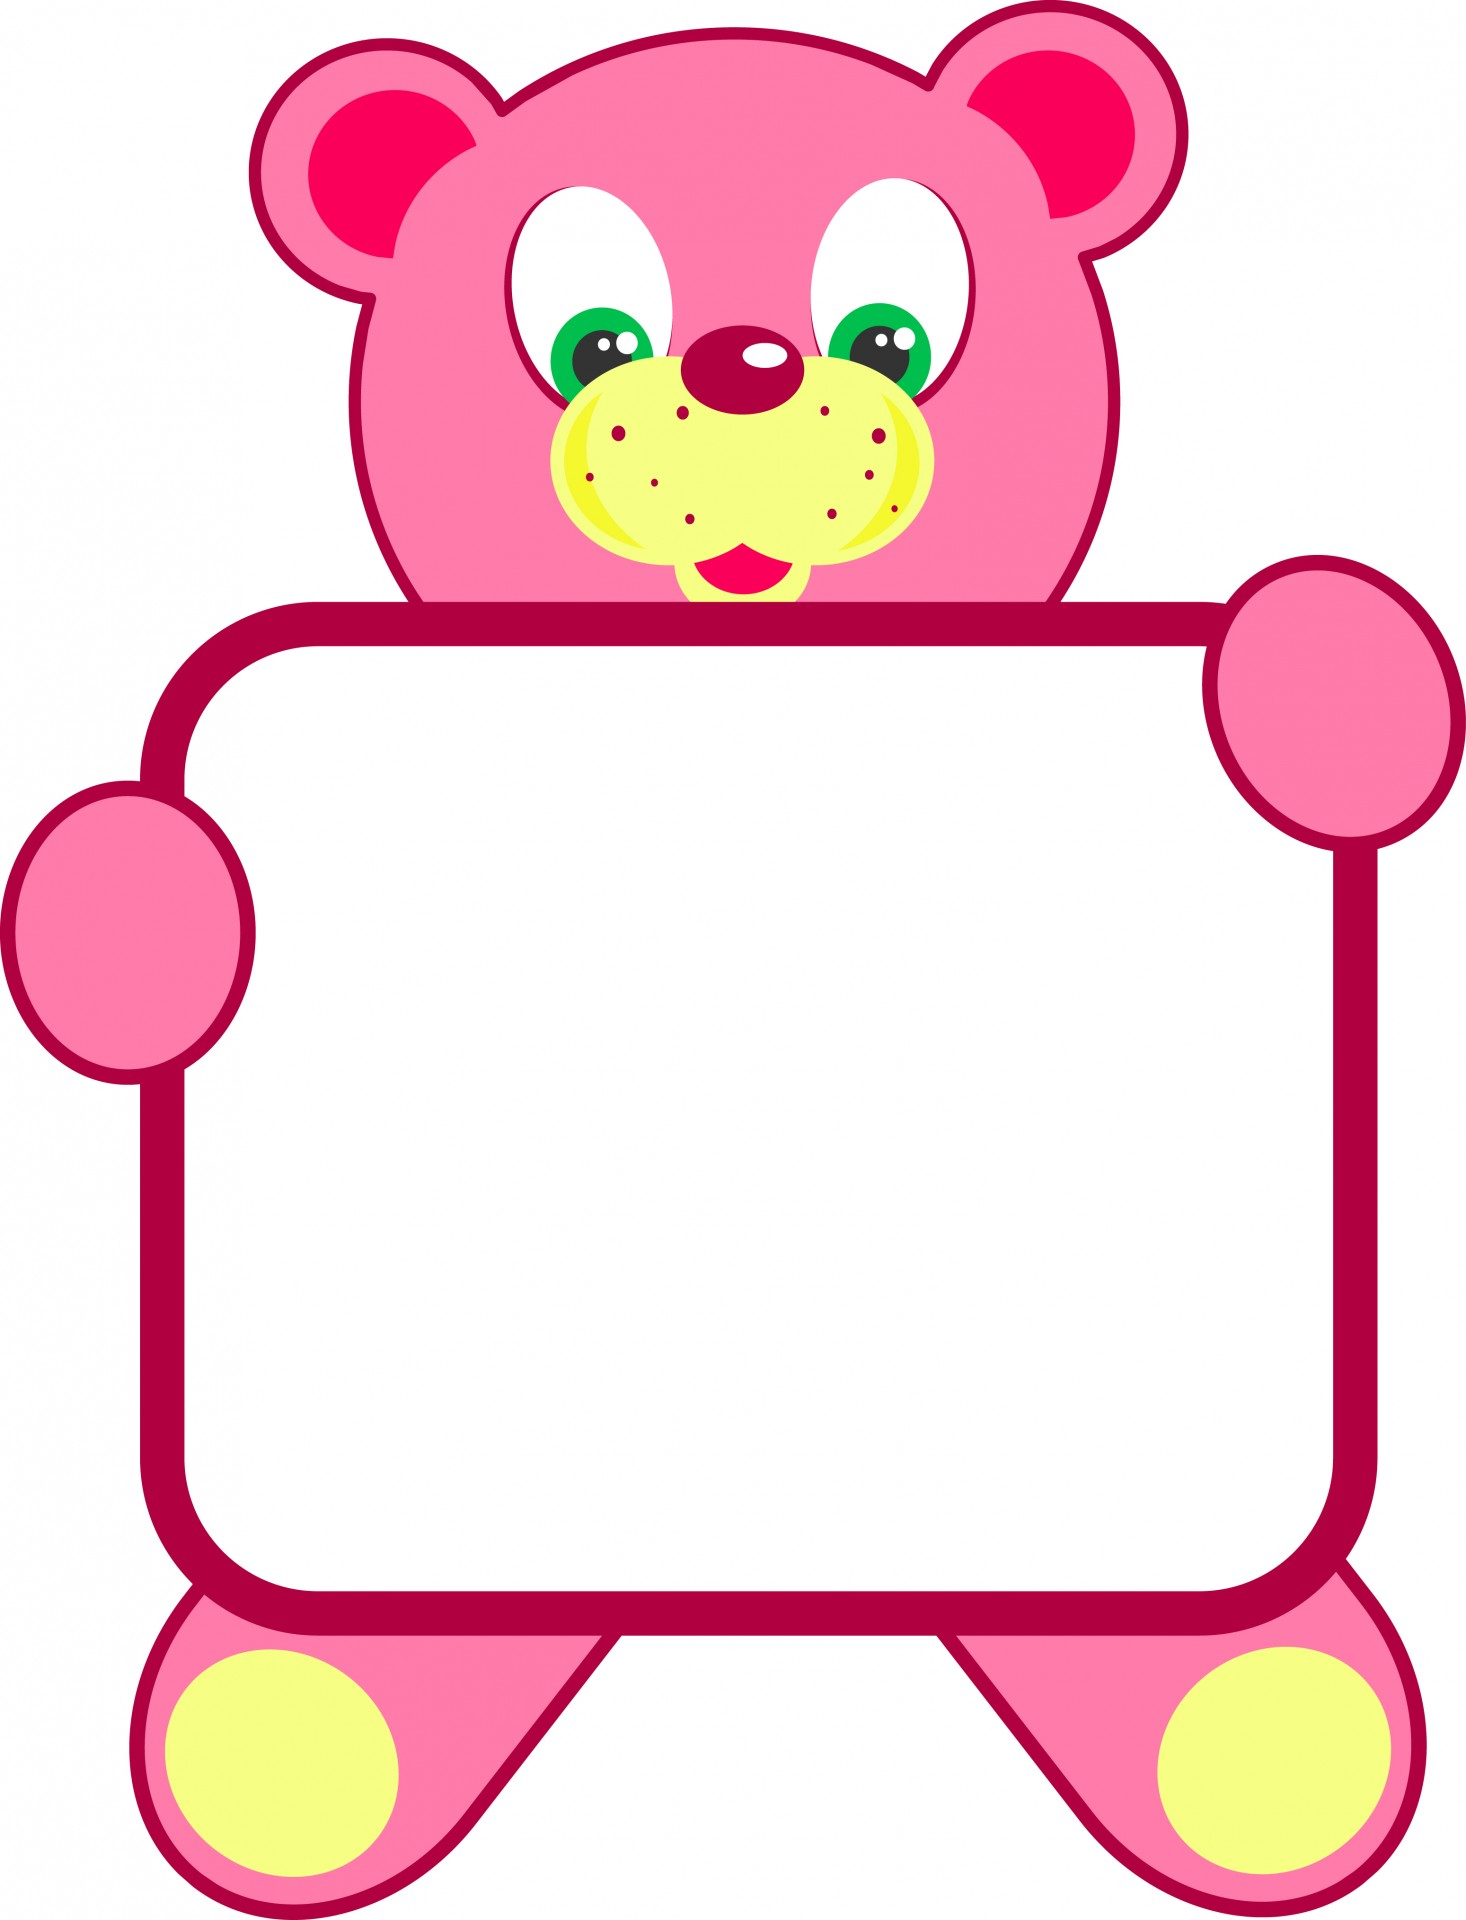 Bear and sign clipart image download Clipart,clip art,illustration,graphic,cartoon - free photo from ... image download